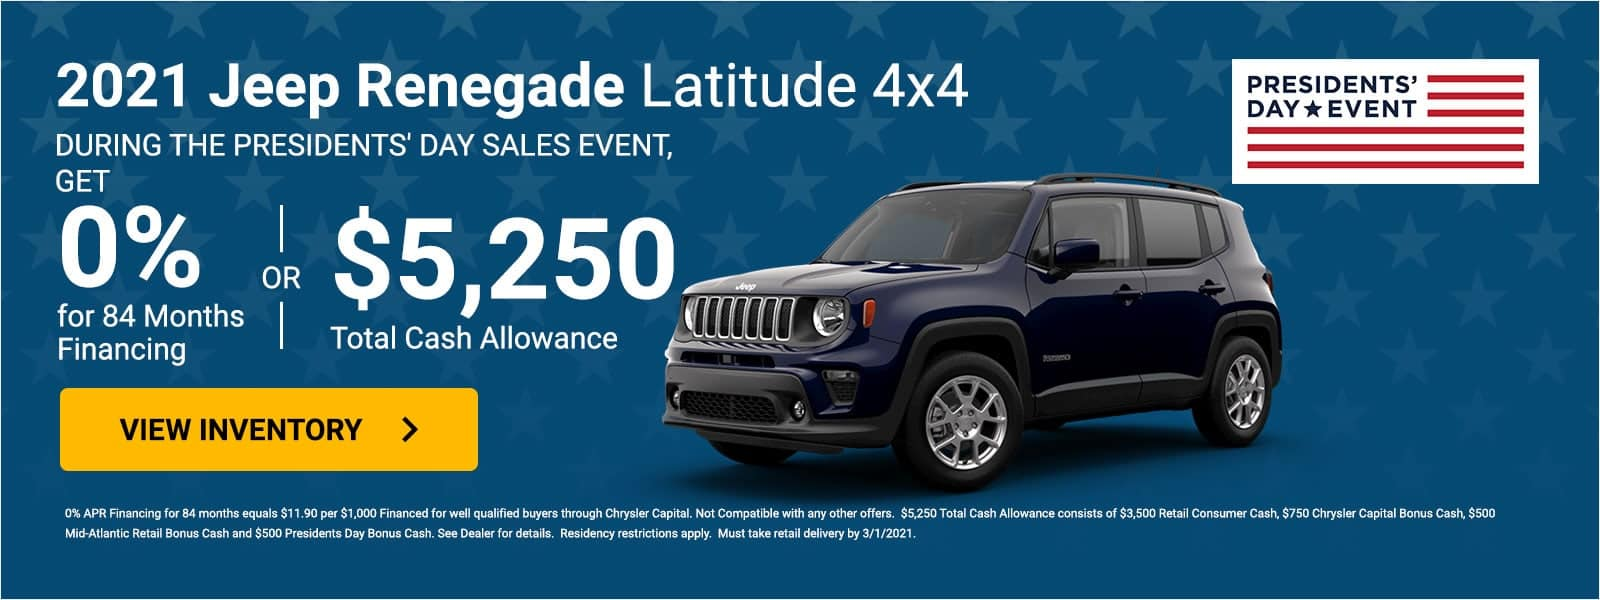 2021 Jeep Renegade Offer